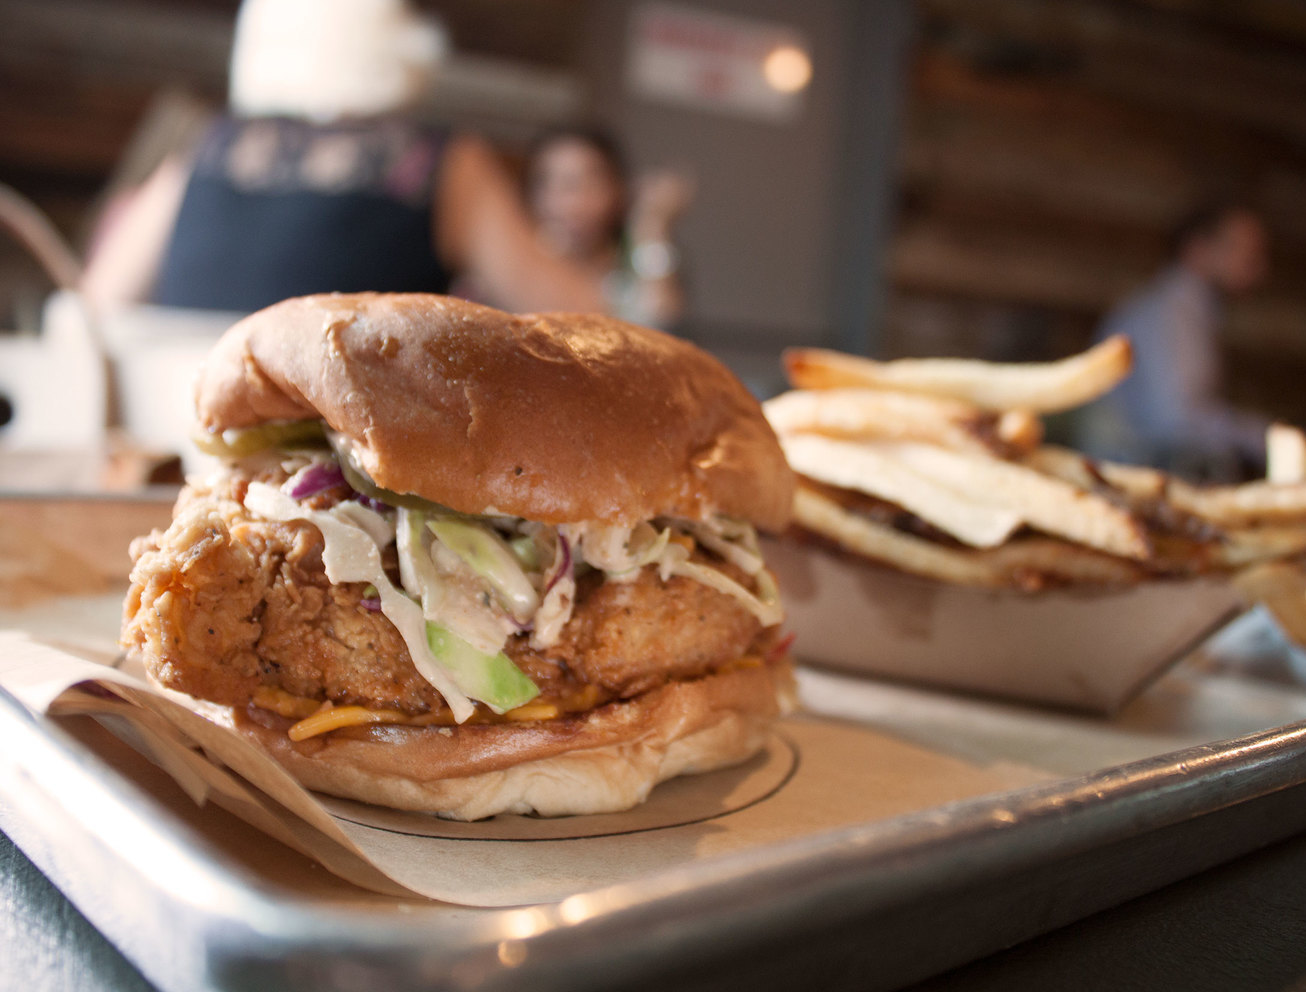 metal tray with fried chicken sandwich and fries